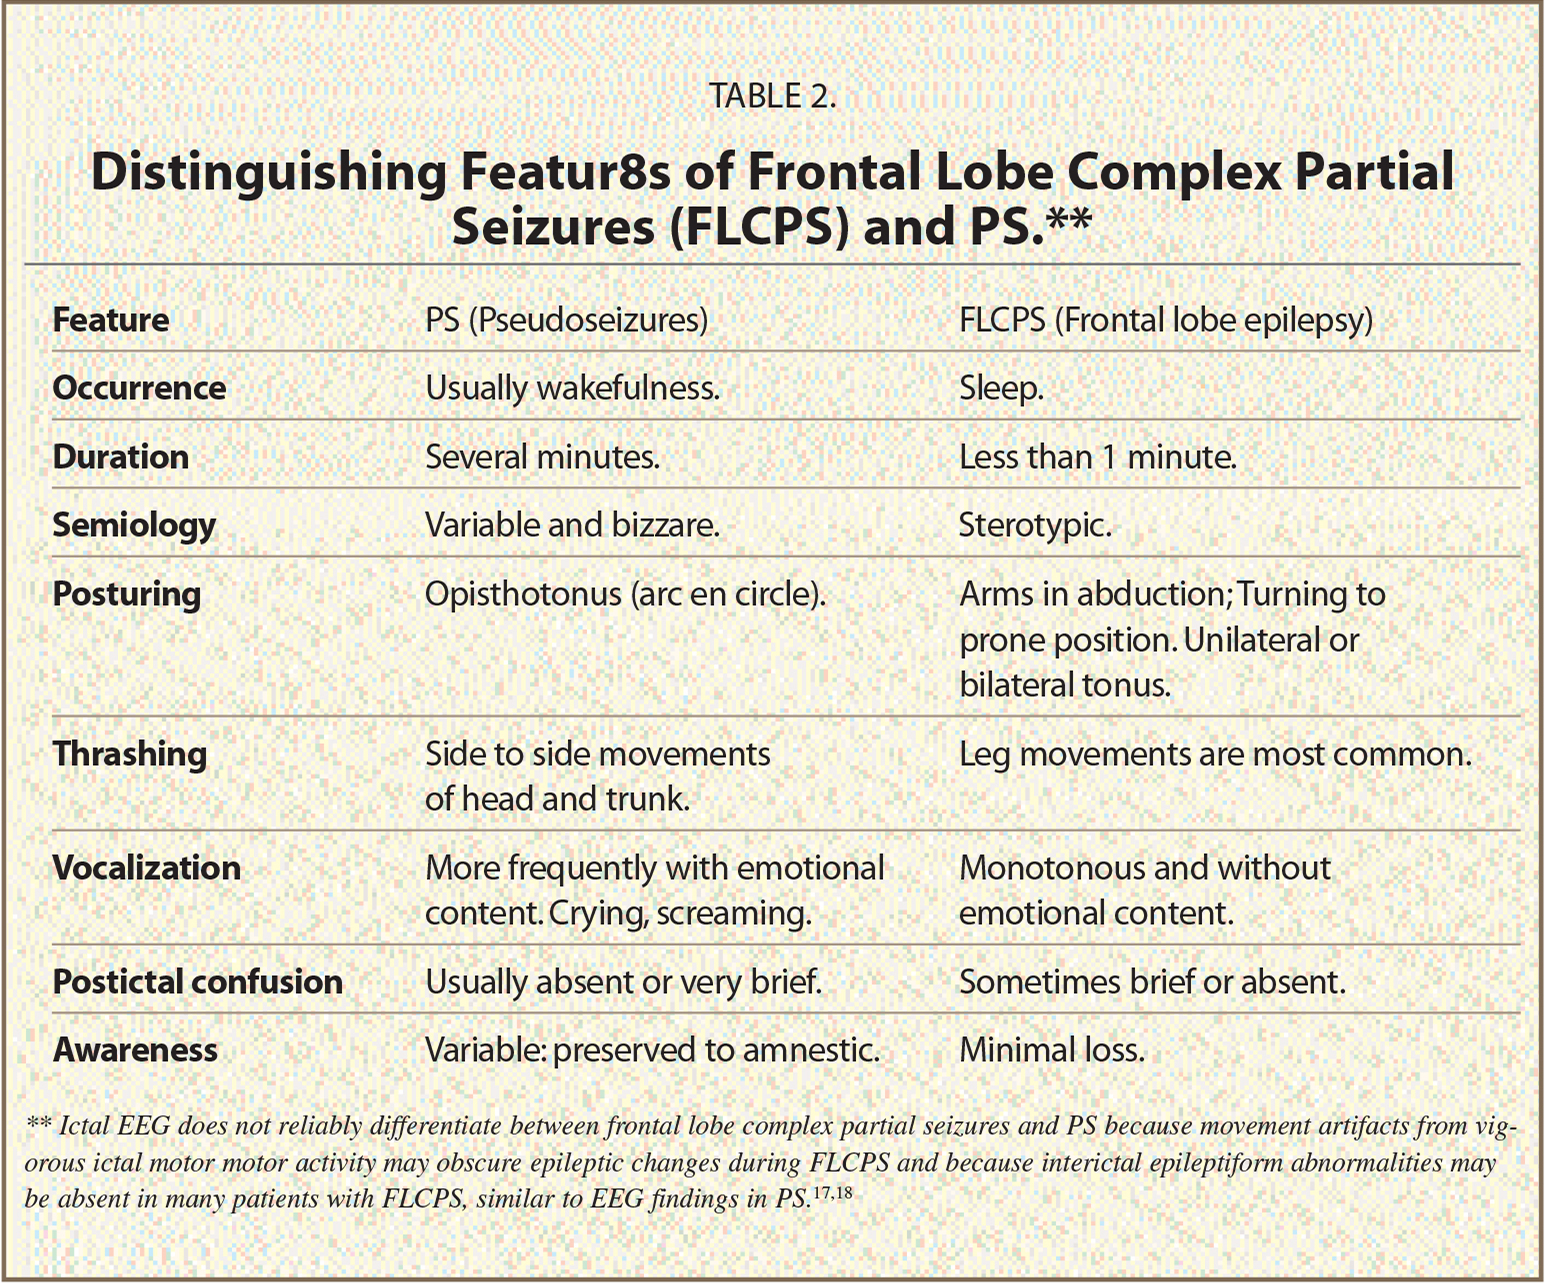 Distinguishing Featur8s of Frontal Lobe Complex Partial Seizures (FLCPS) and PS.**